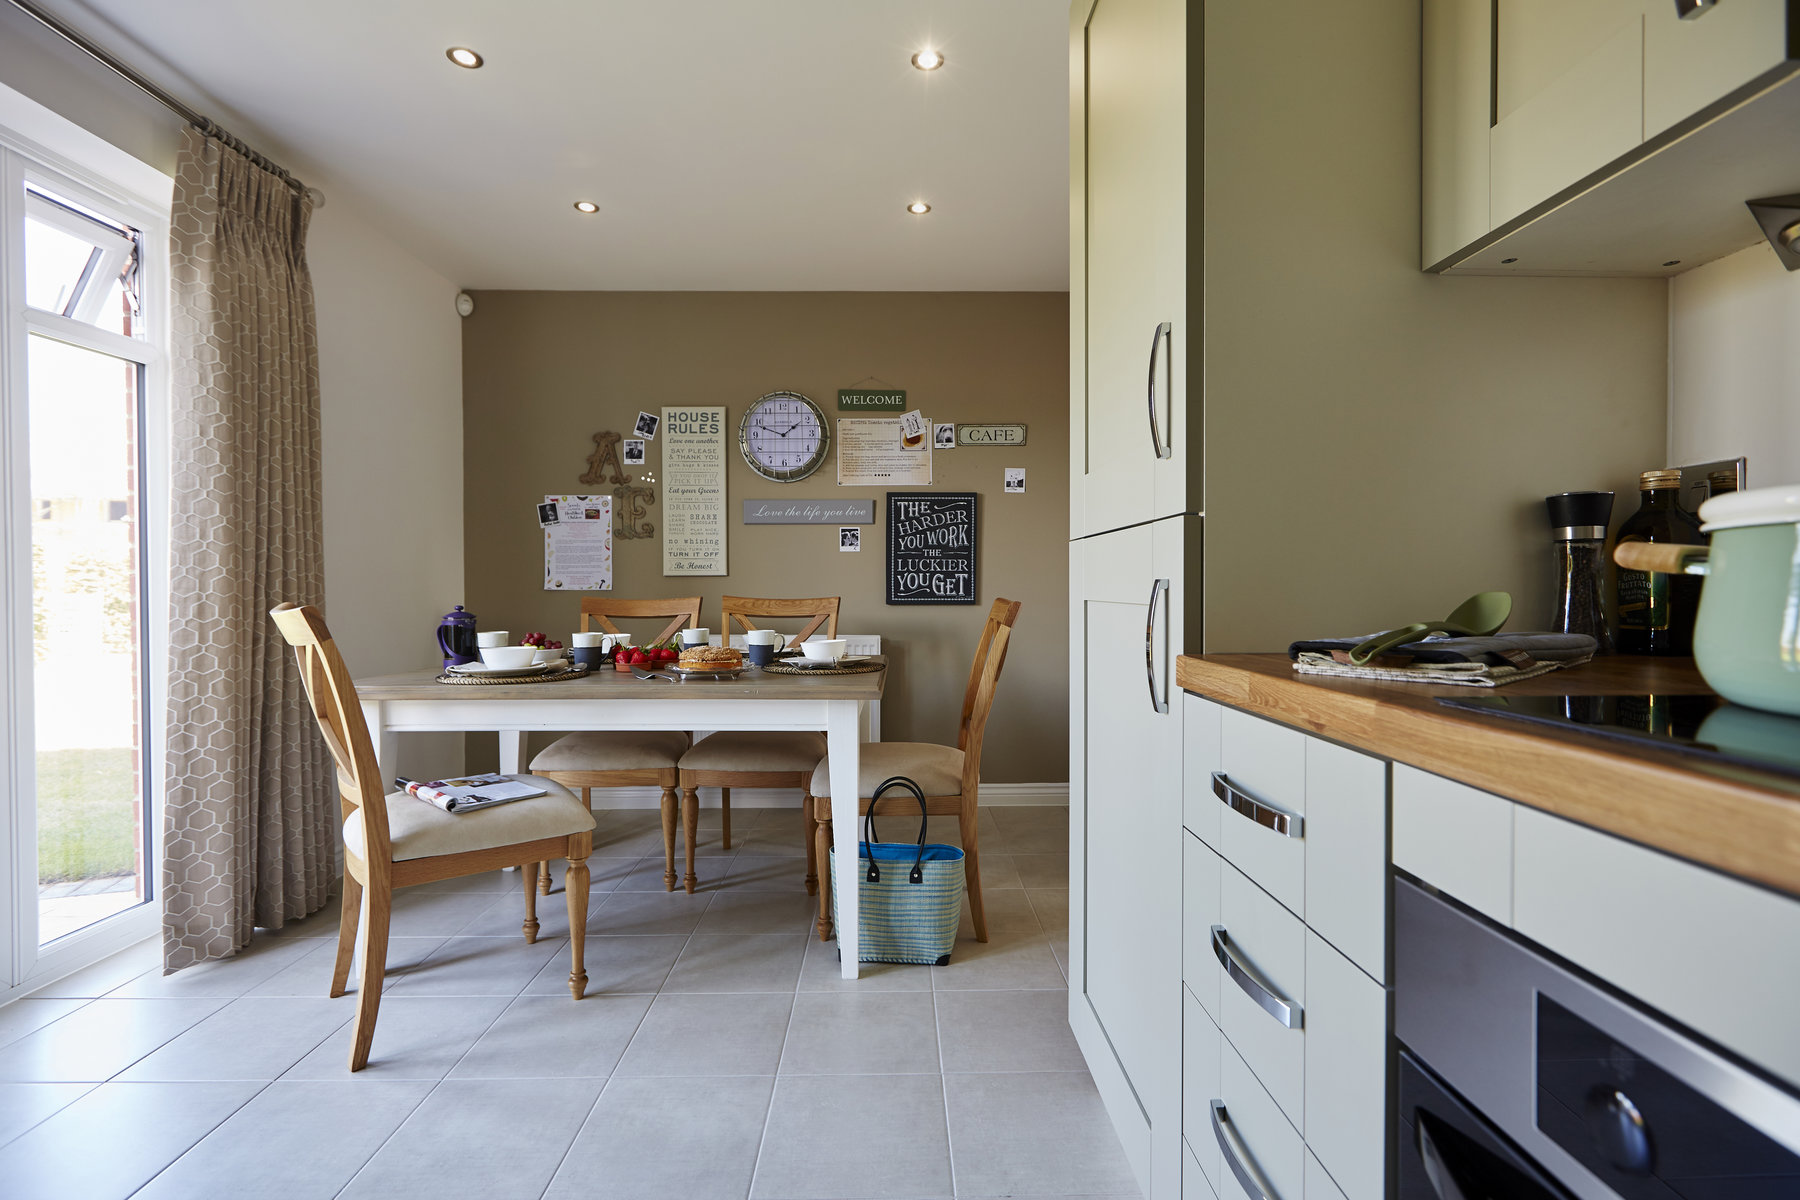 rsz_11tw_mids_burlington_fields_shifnal_pa34_gosford_kitchen_dining